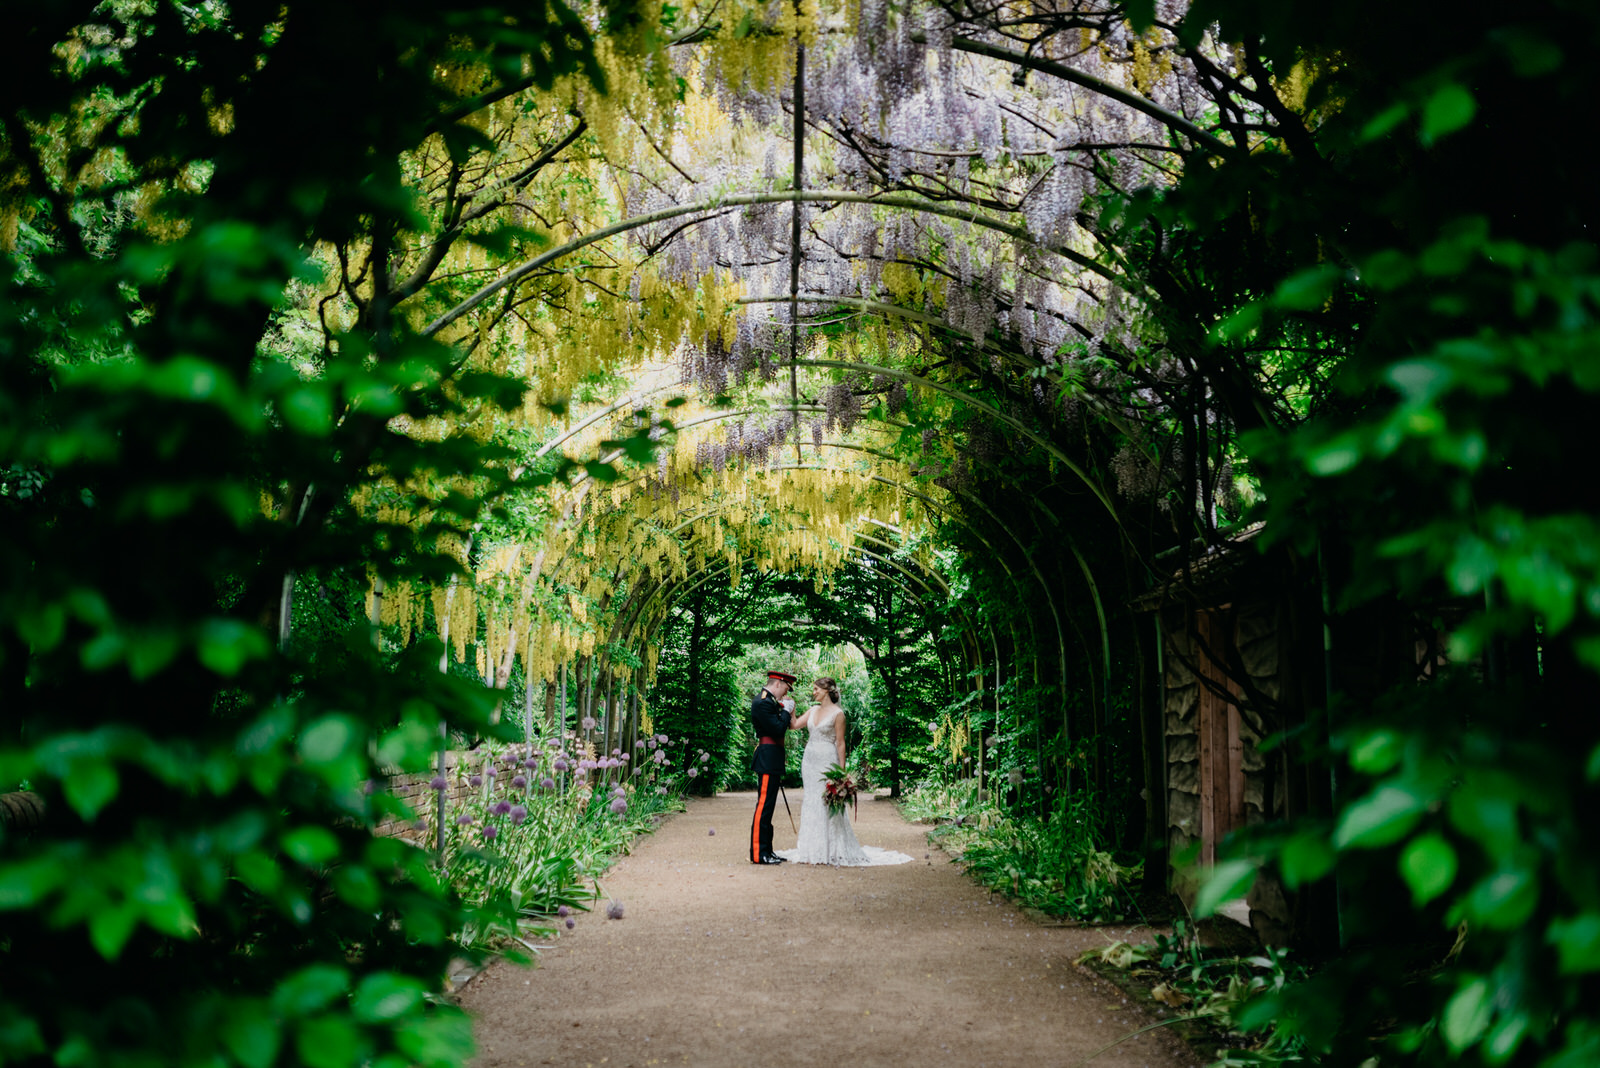 bride and groom in military uniform kissing under wisteria arch